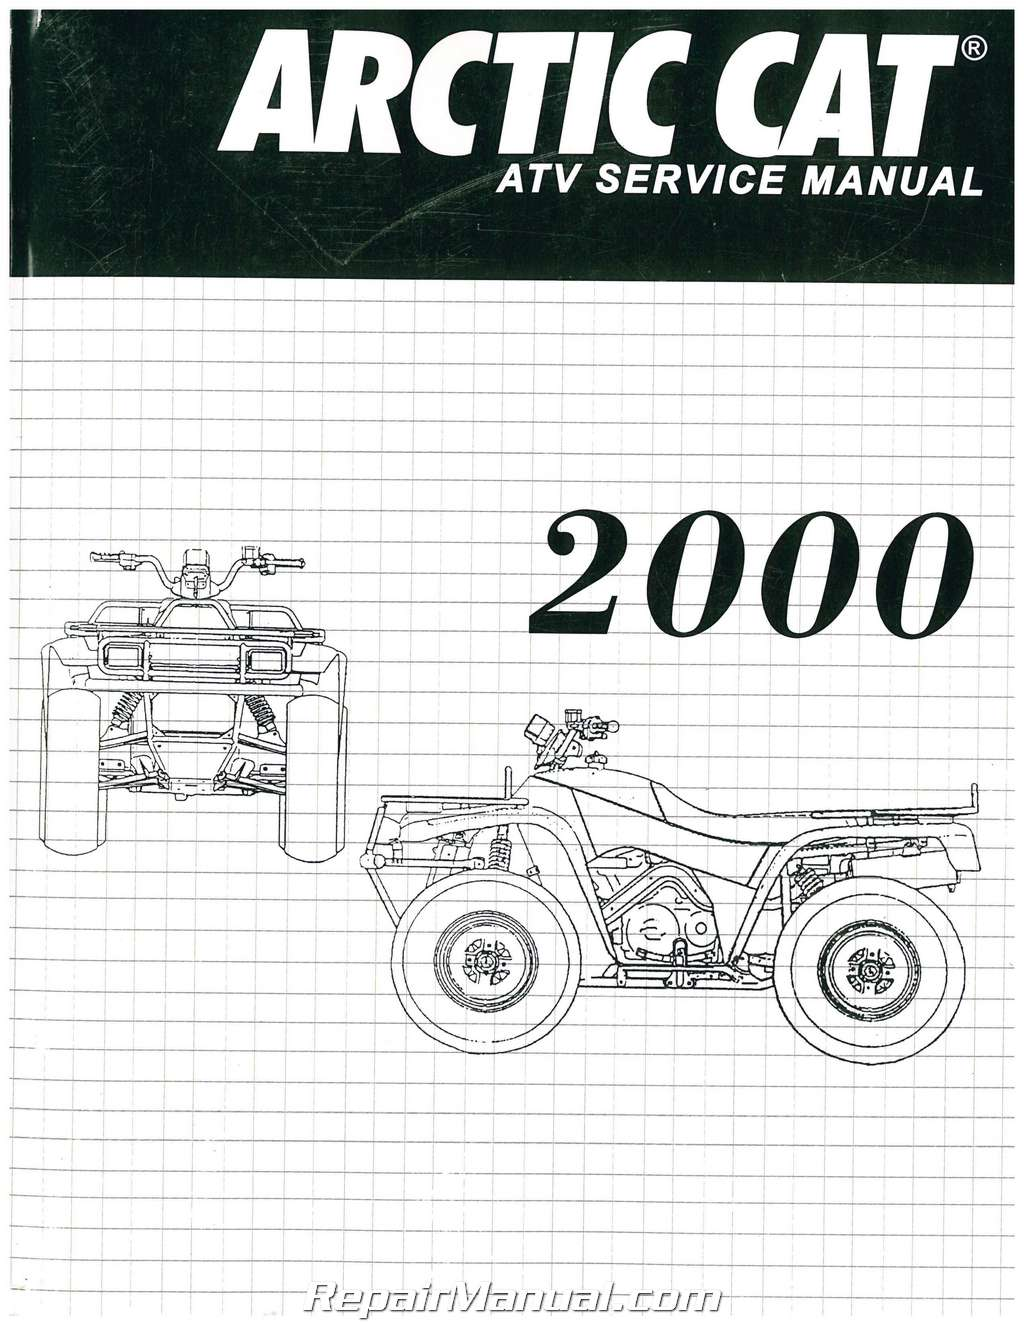 hight resolution of wiring diagram 1998 arctic cat 500 atv wiring resources rh ukgm org arctic cat 250 wiring diagram arctic cat 300 wiring diagram